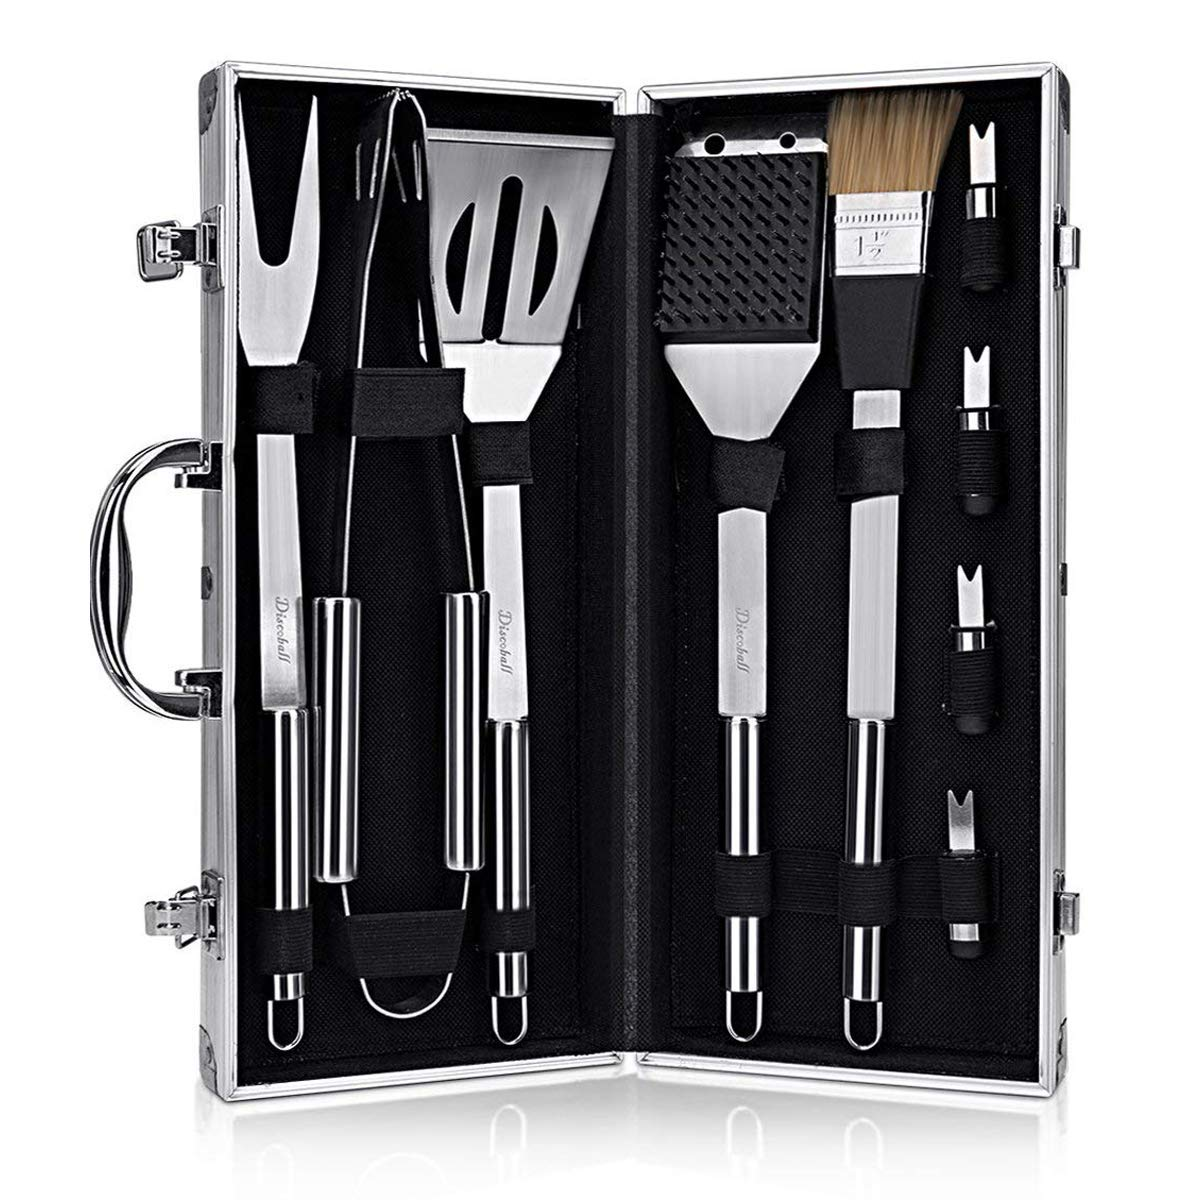 CCBETTER Barbecue Tool Set for Camping and Kitchen Premium Stainless Steel Barbecue Grilling -Gift for Man Dad Women Barbecue Enthusiasts Set of 9